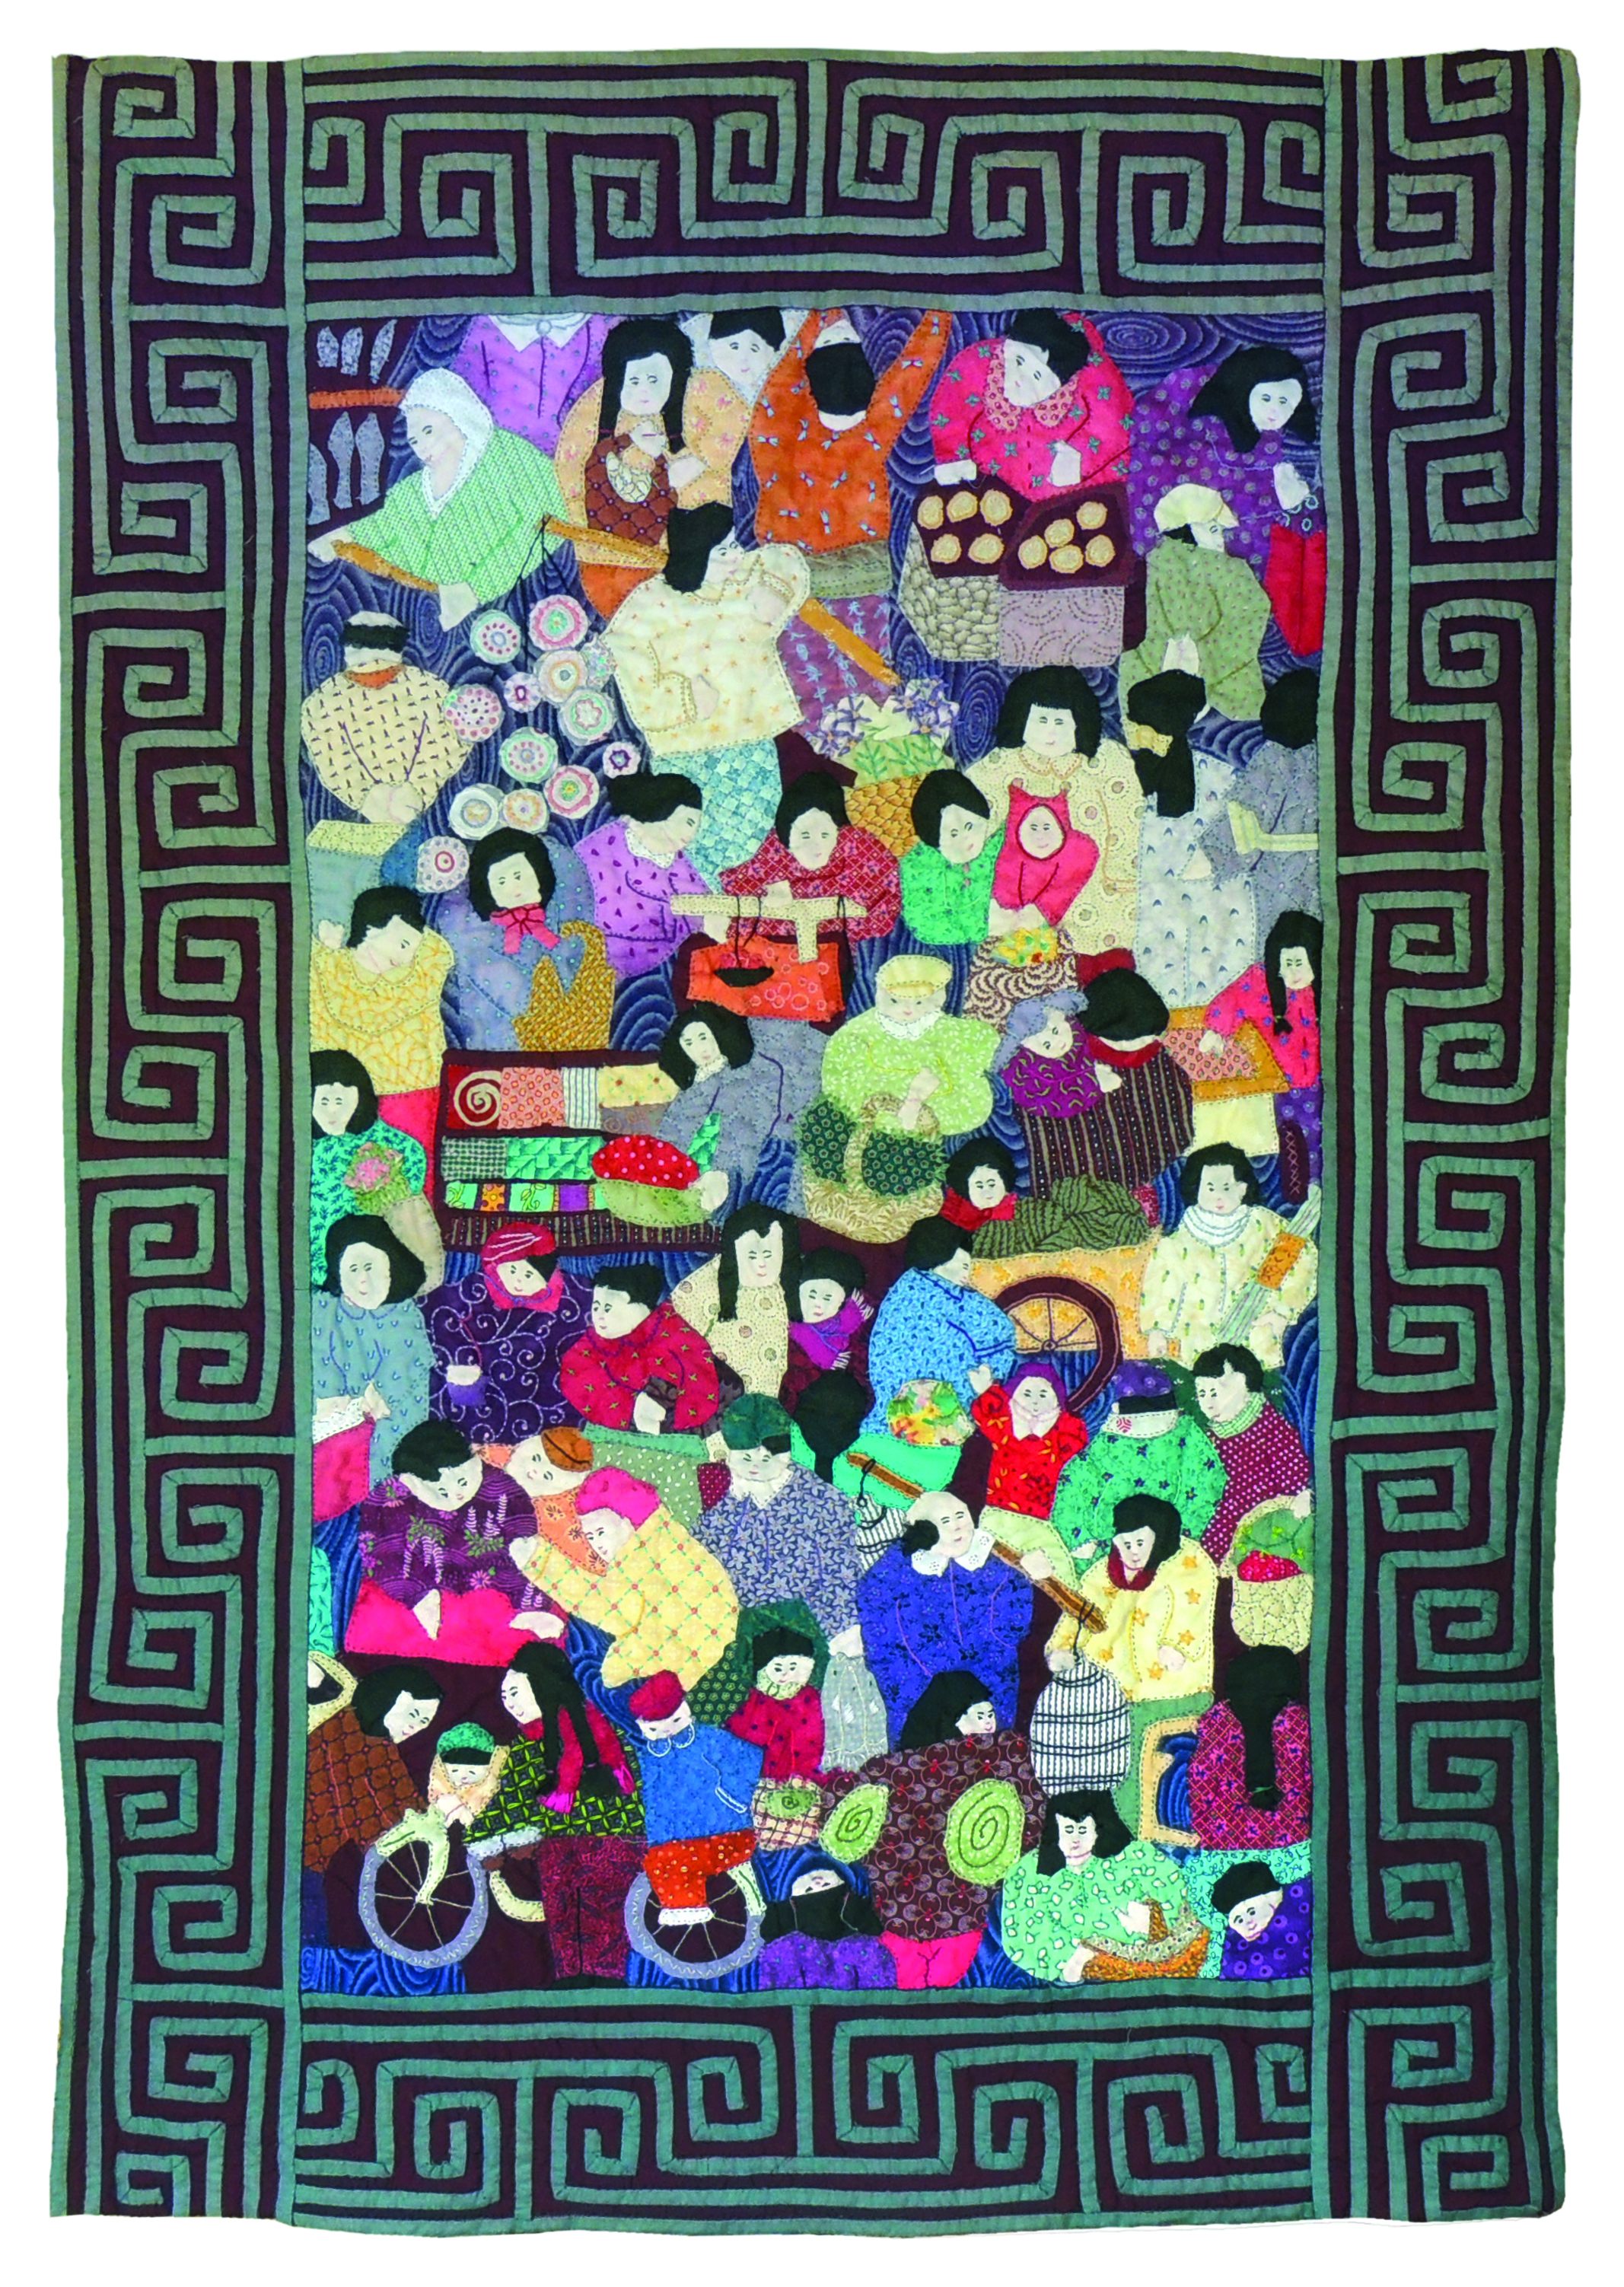 Marianne Rabb Britton | CHINESE STREET SCENE | Fabric & Embroidery | 38 x 26"